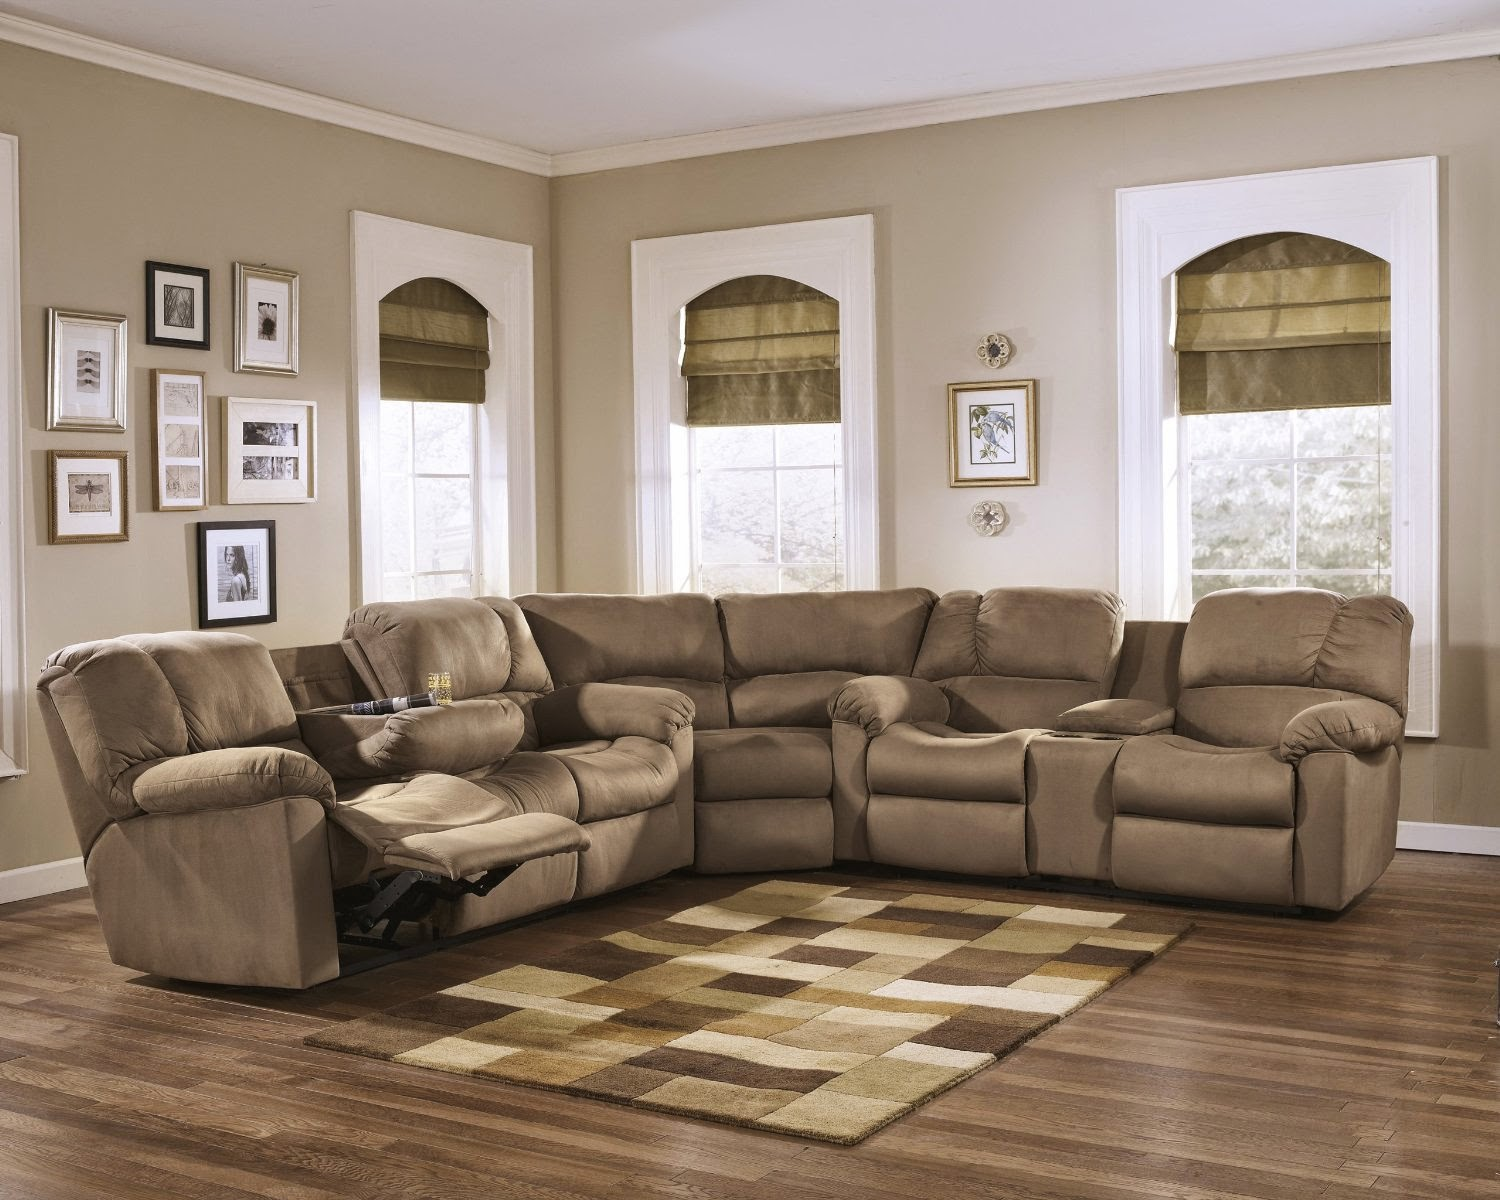 & The Best Reclining Sofas Reviews: Reclining Sectional Sofas islam-shia.org